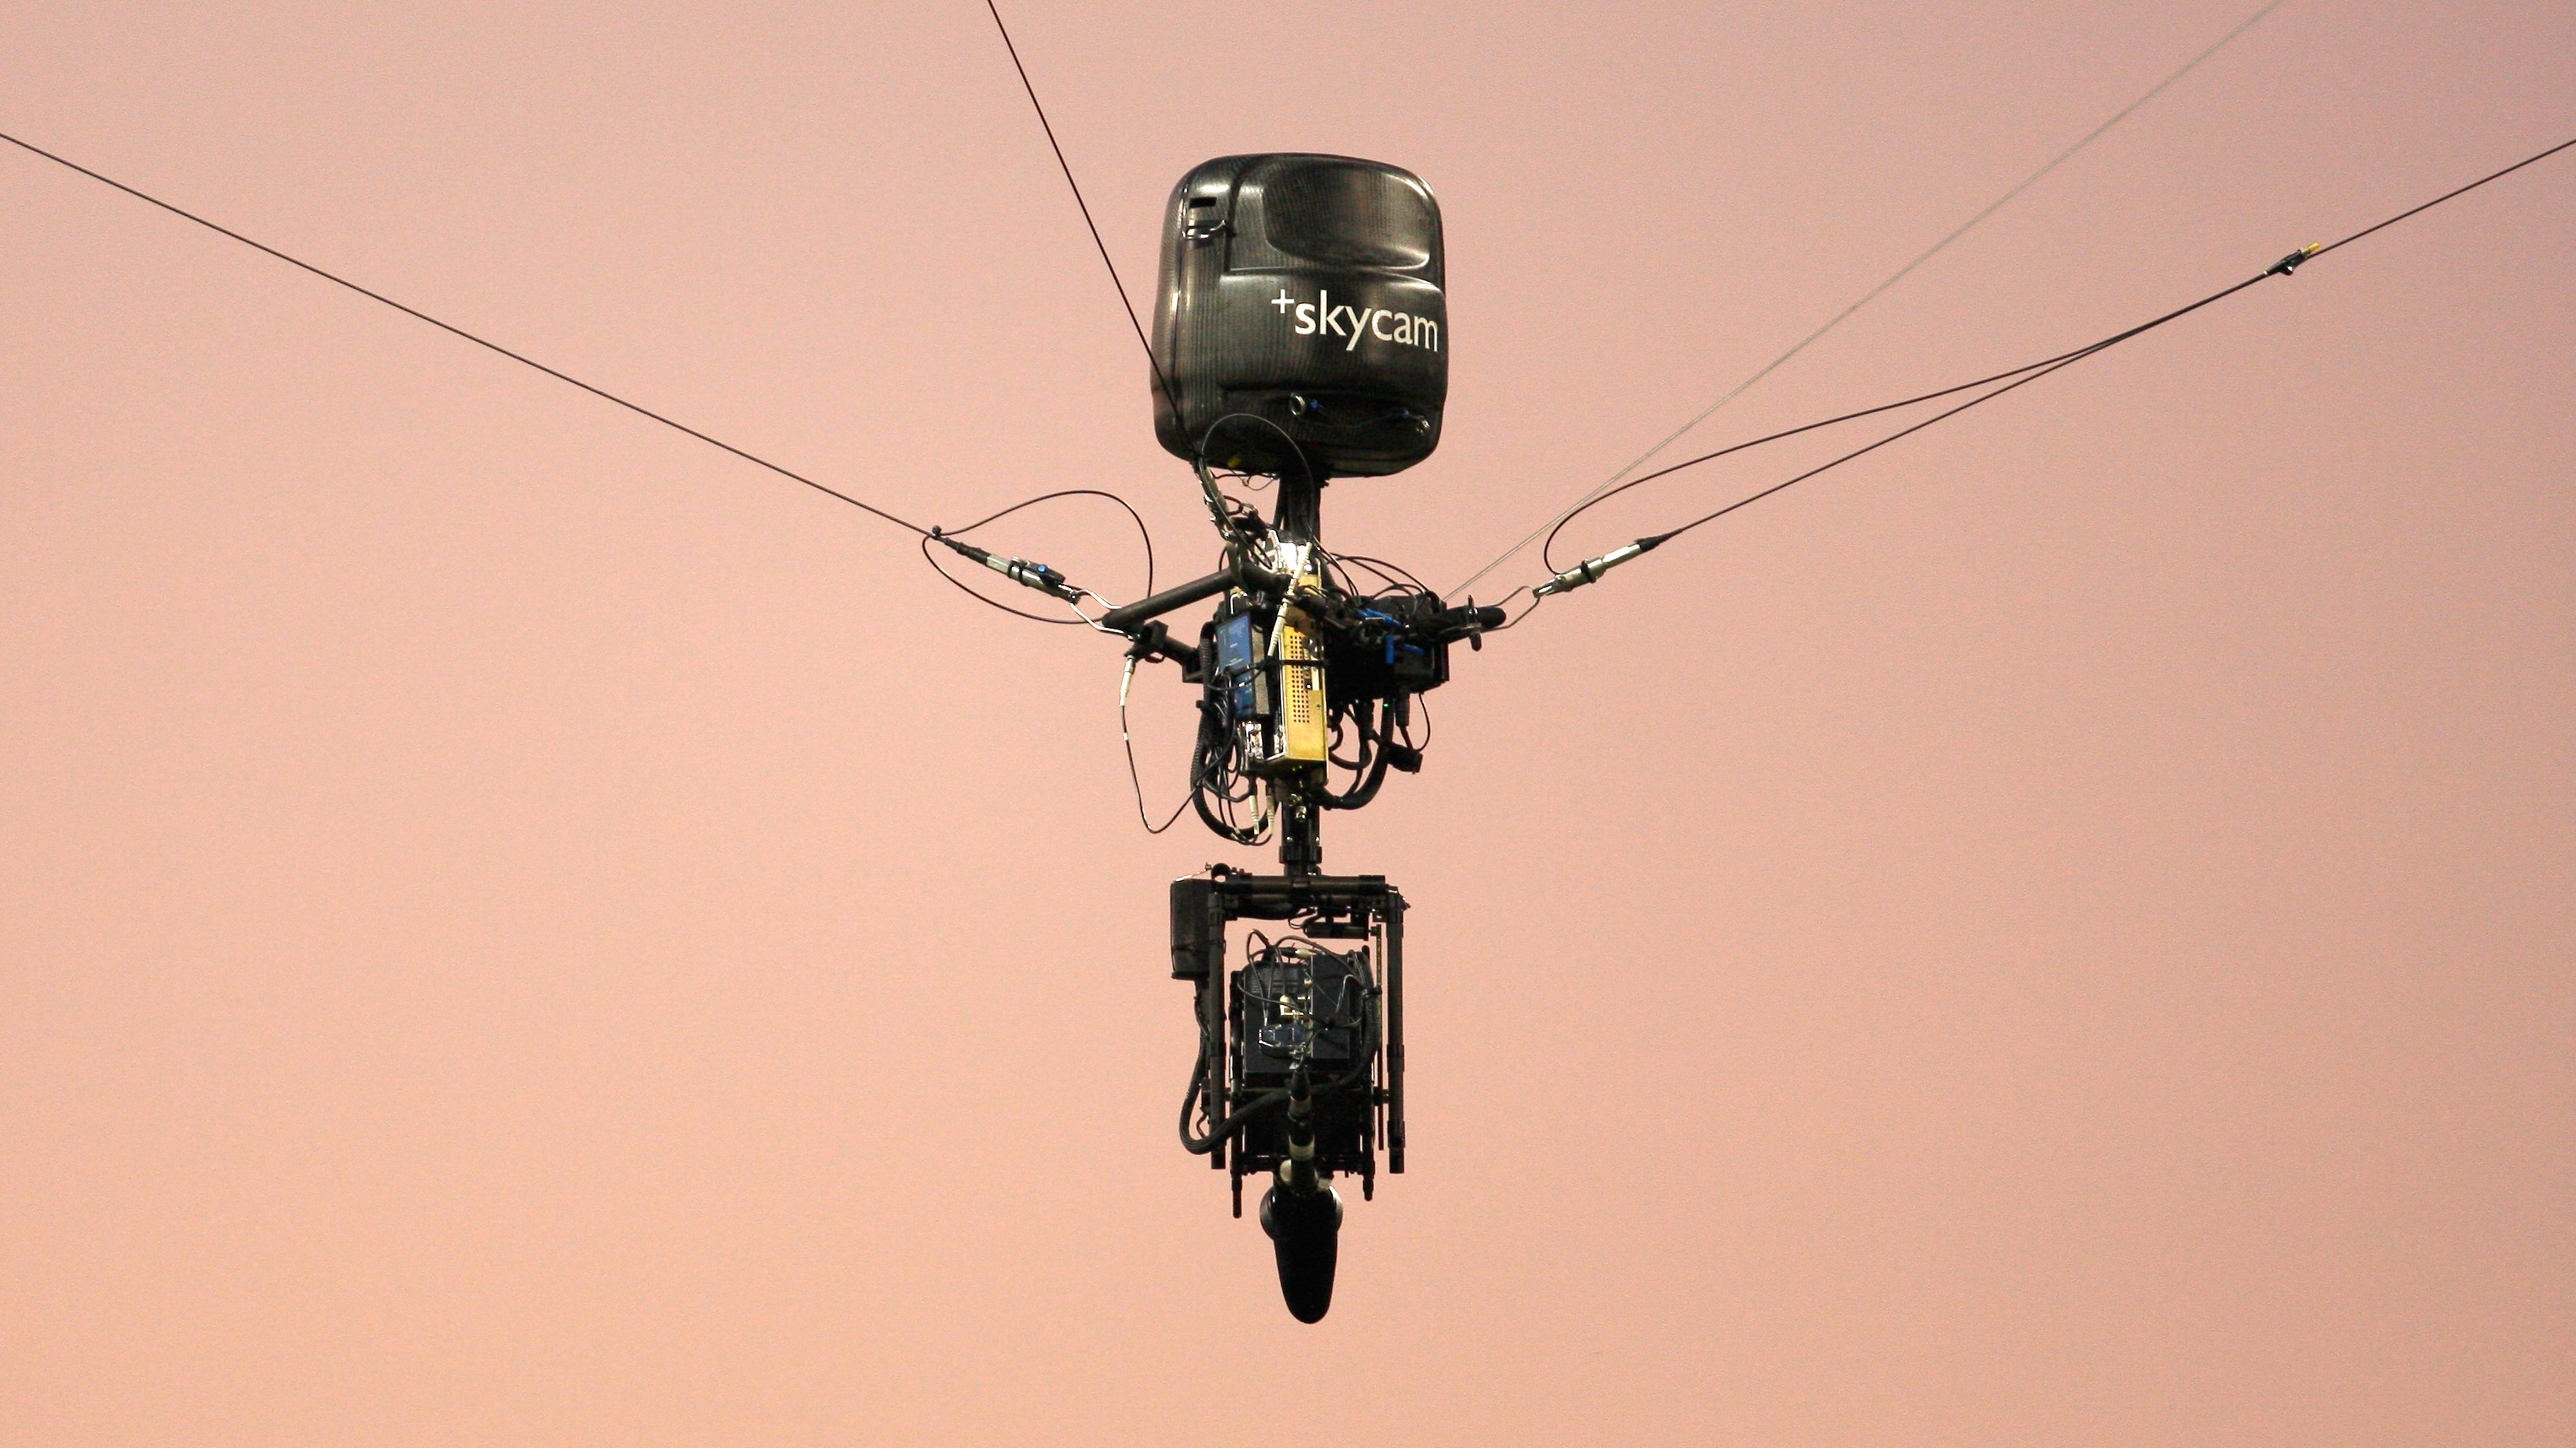 How Much Does The NFL Skycam Cost? How Much Does The Spidercam Cost?